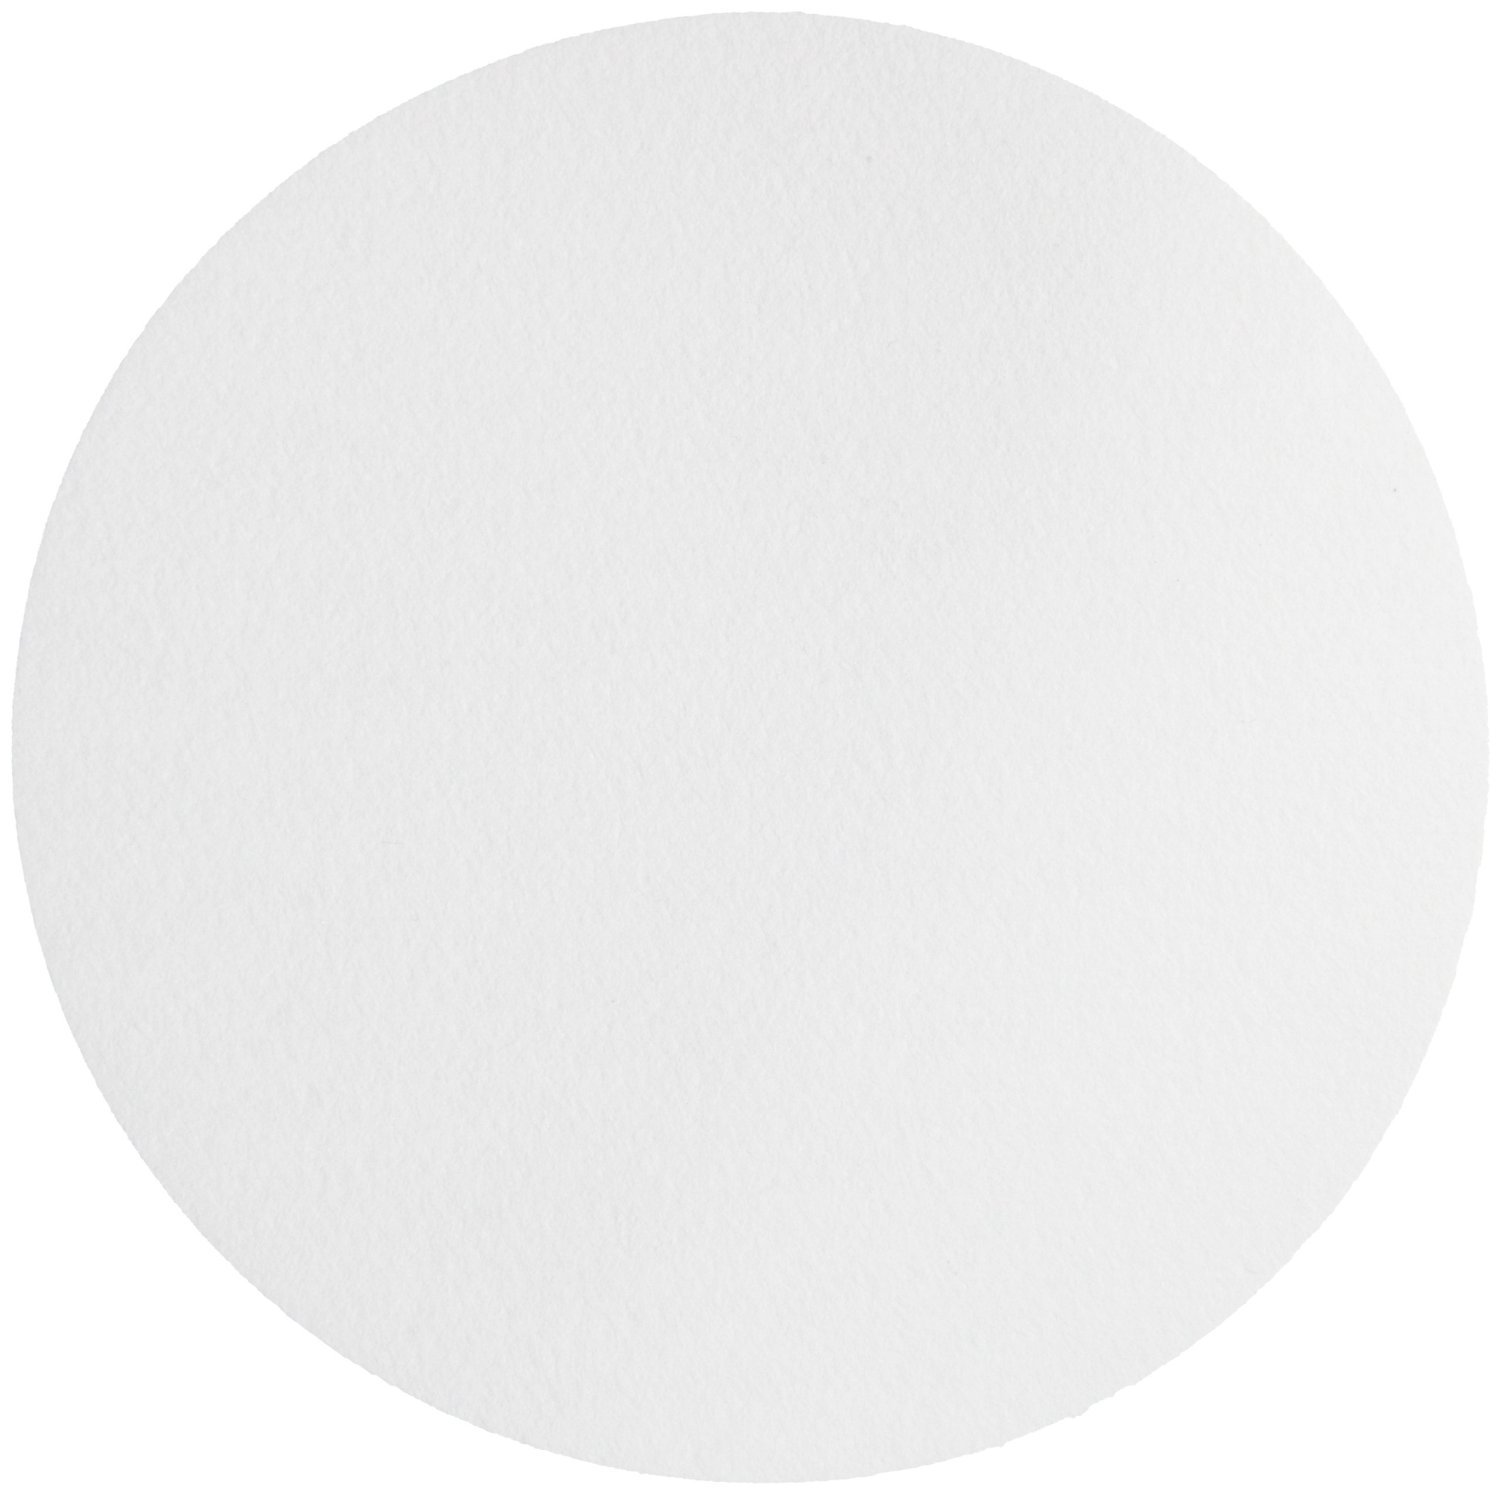 Omicron 130025 Borosilicate Glass Fiber Binder Free Filter, 1.6 μm, 25 mm (Pack of 100) by Omicron